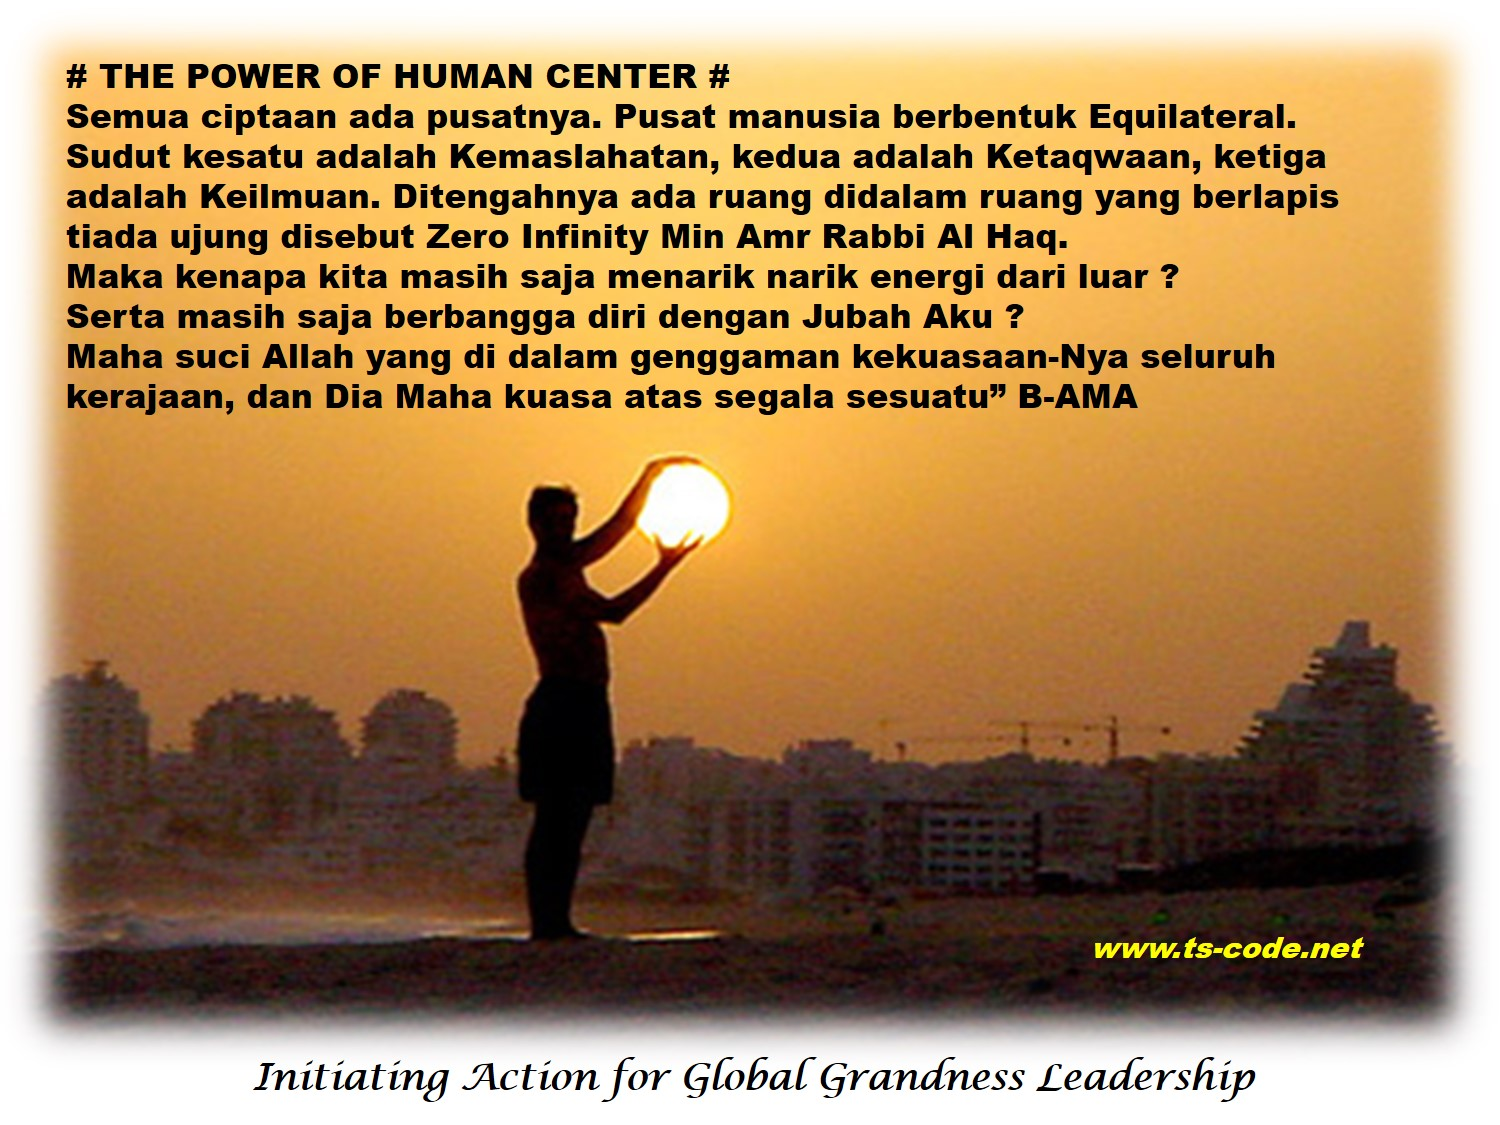 ThePowerOfHumanCenter